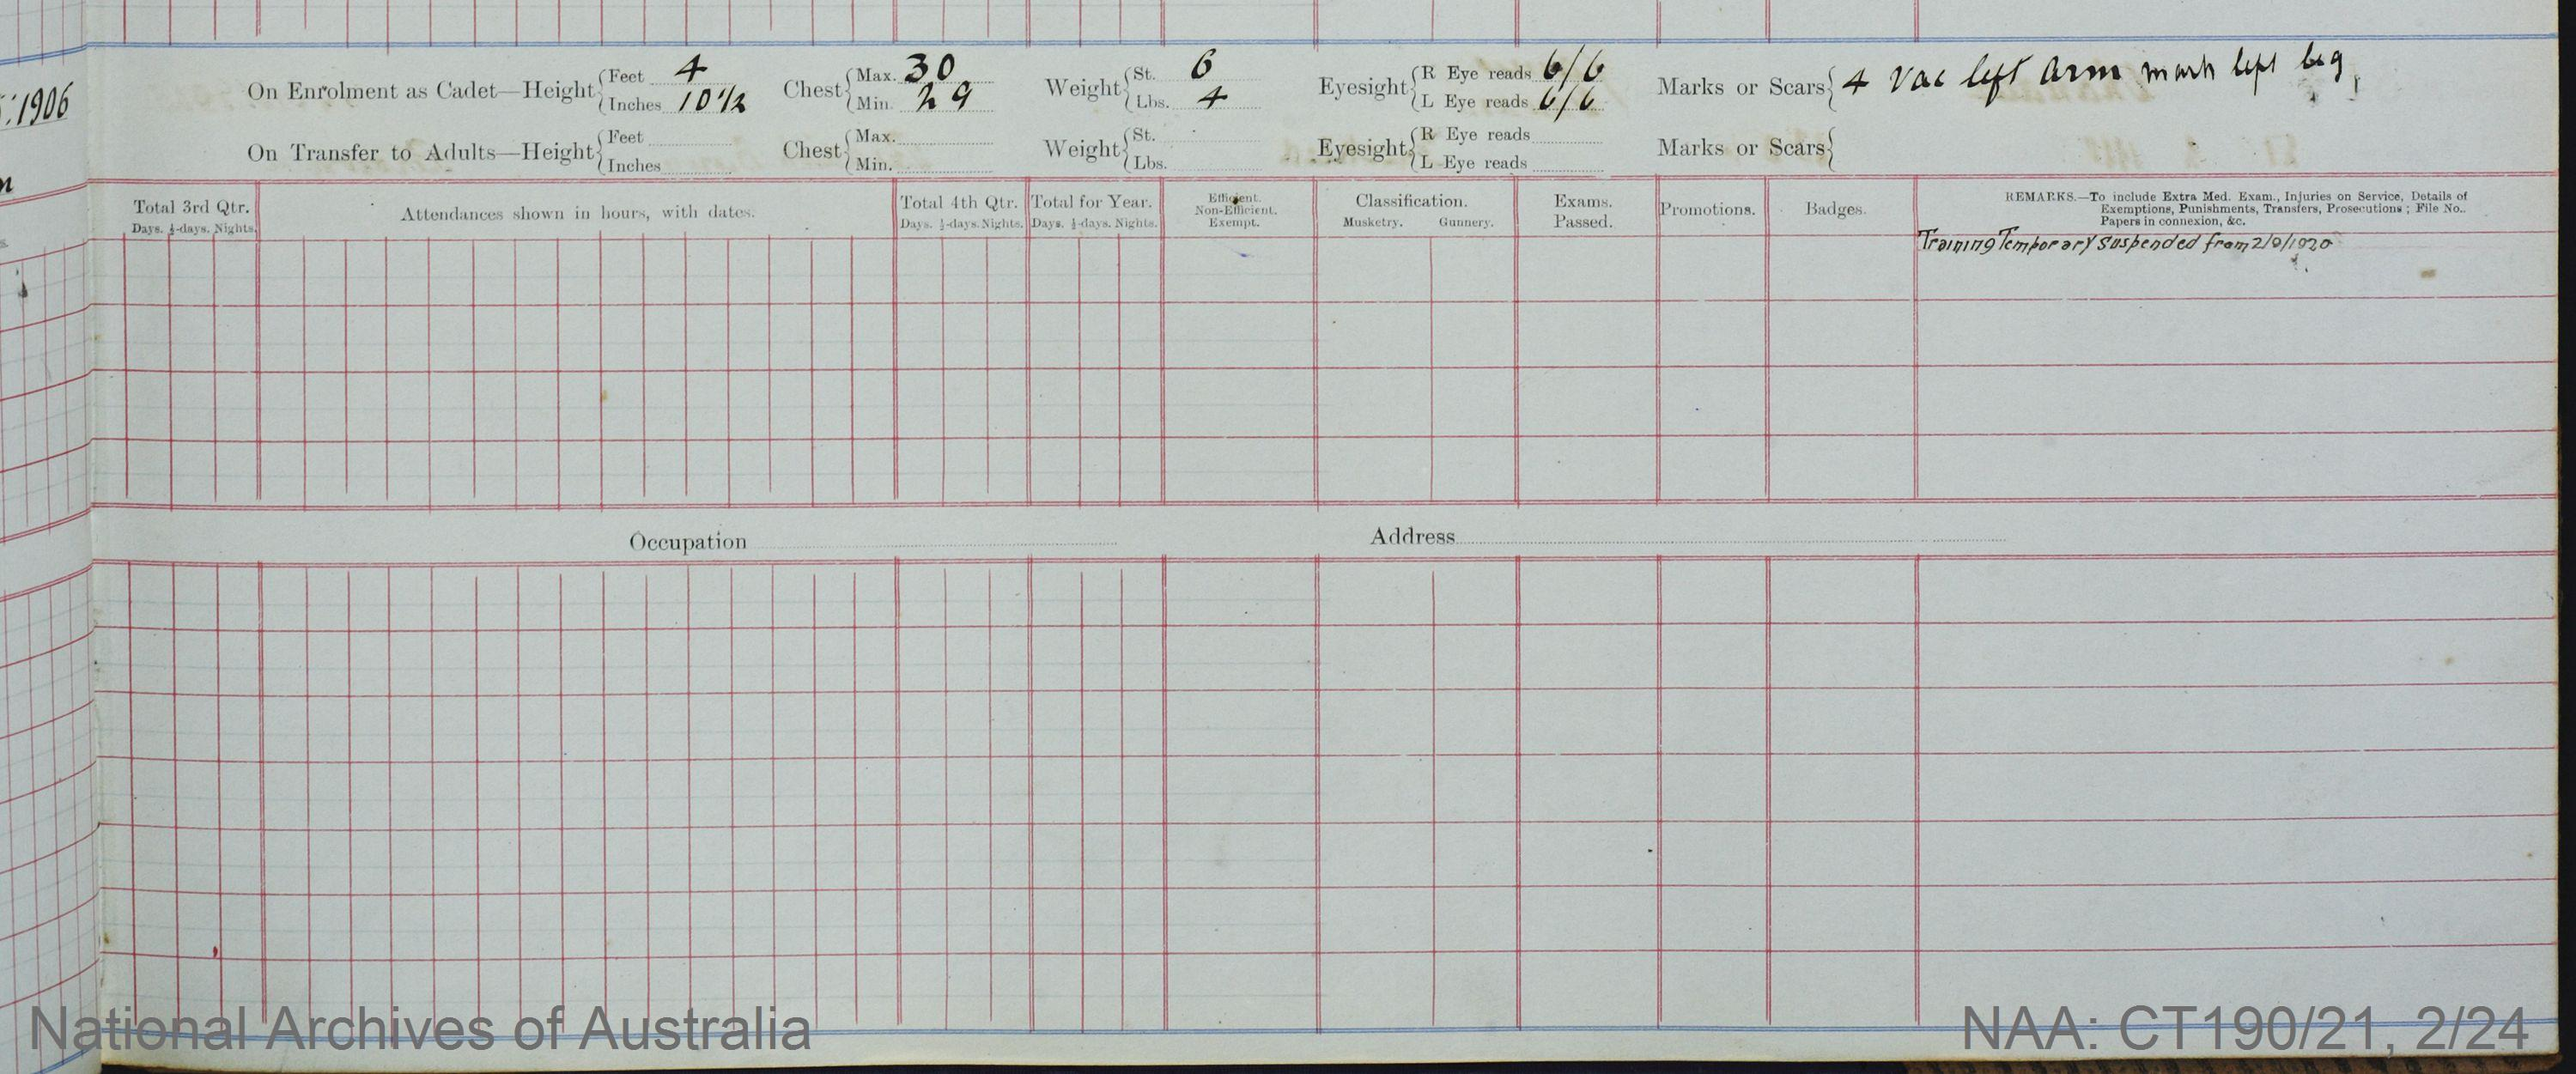 SURNAME - BROWN;  GIVEN NAME(S) - Stanley Charles;  OFFICIAL NUMBER - 314;  DATE OF BIRTH - 8 May 1906;  PLACE OF BIRTH - [Unknown];  NEXT OF KIN - [Unknown] ;  SERVICE/STATION - Port Fairy;  REGISTRATION DATE - 30 January 1920